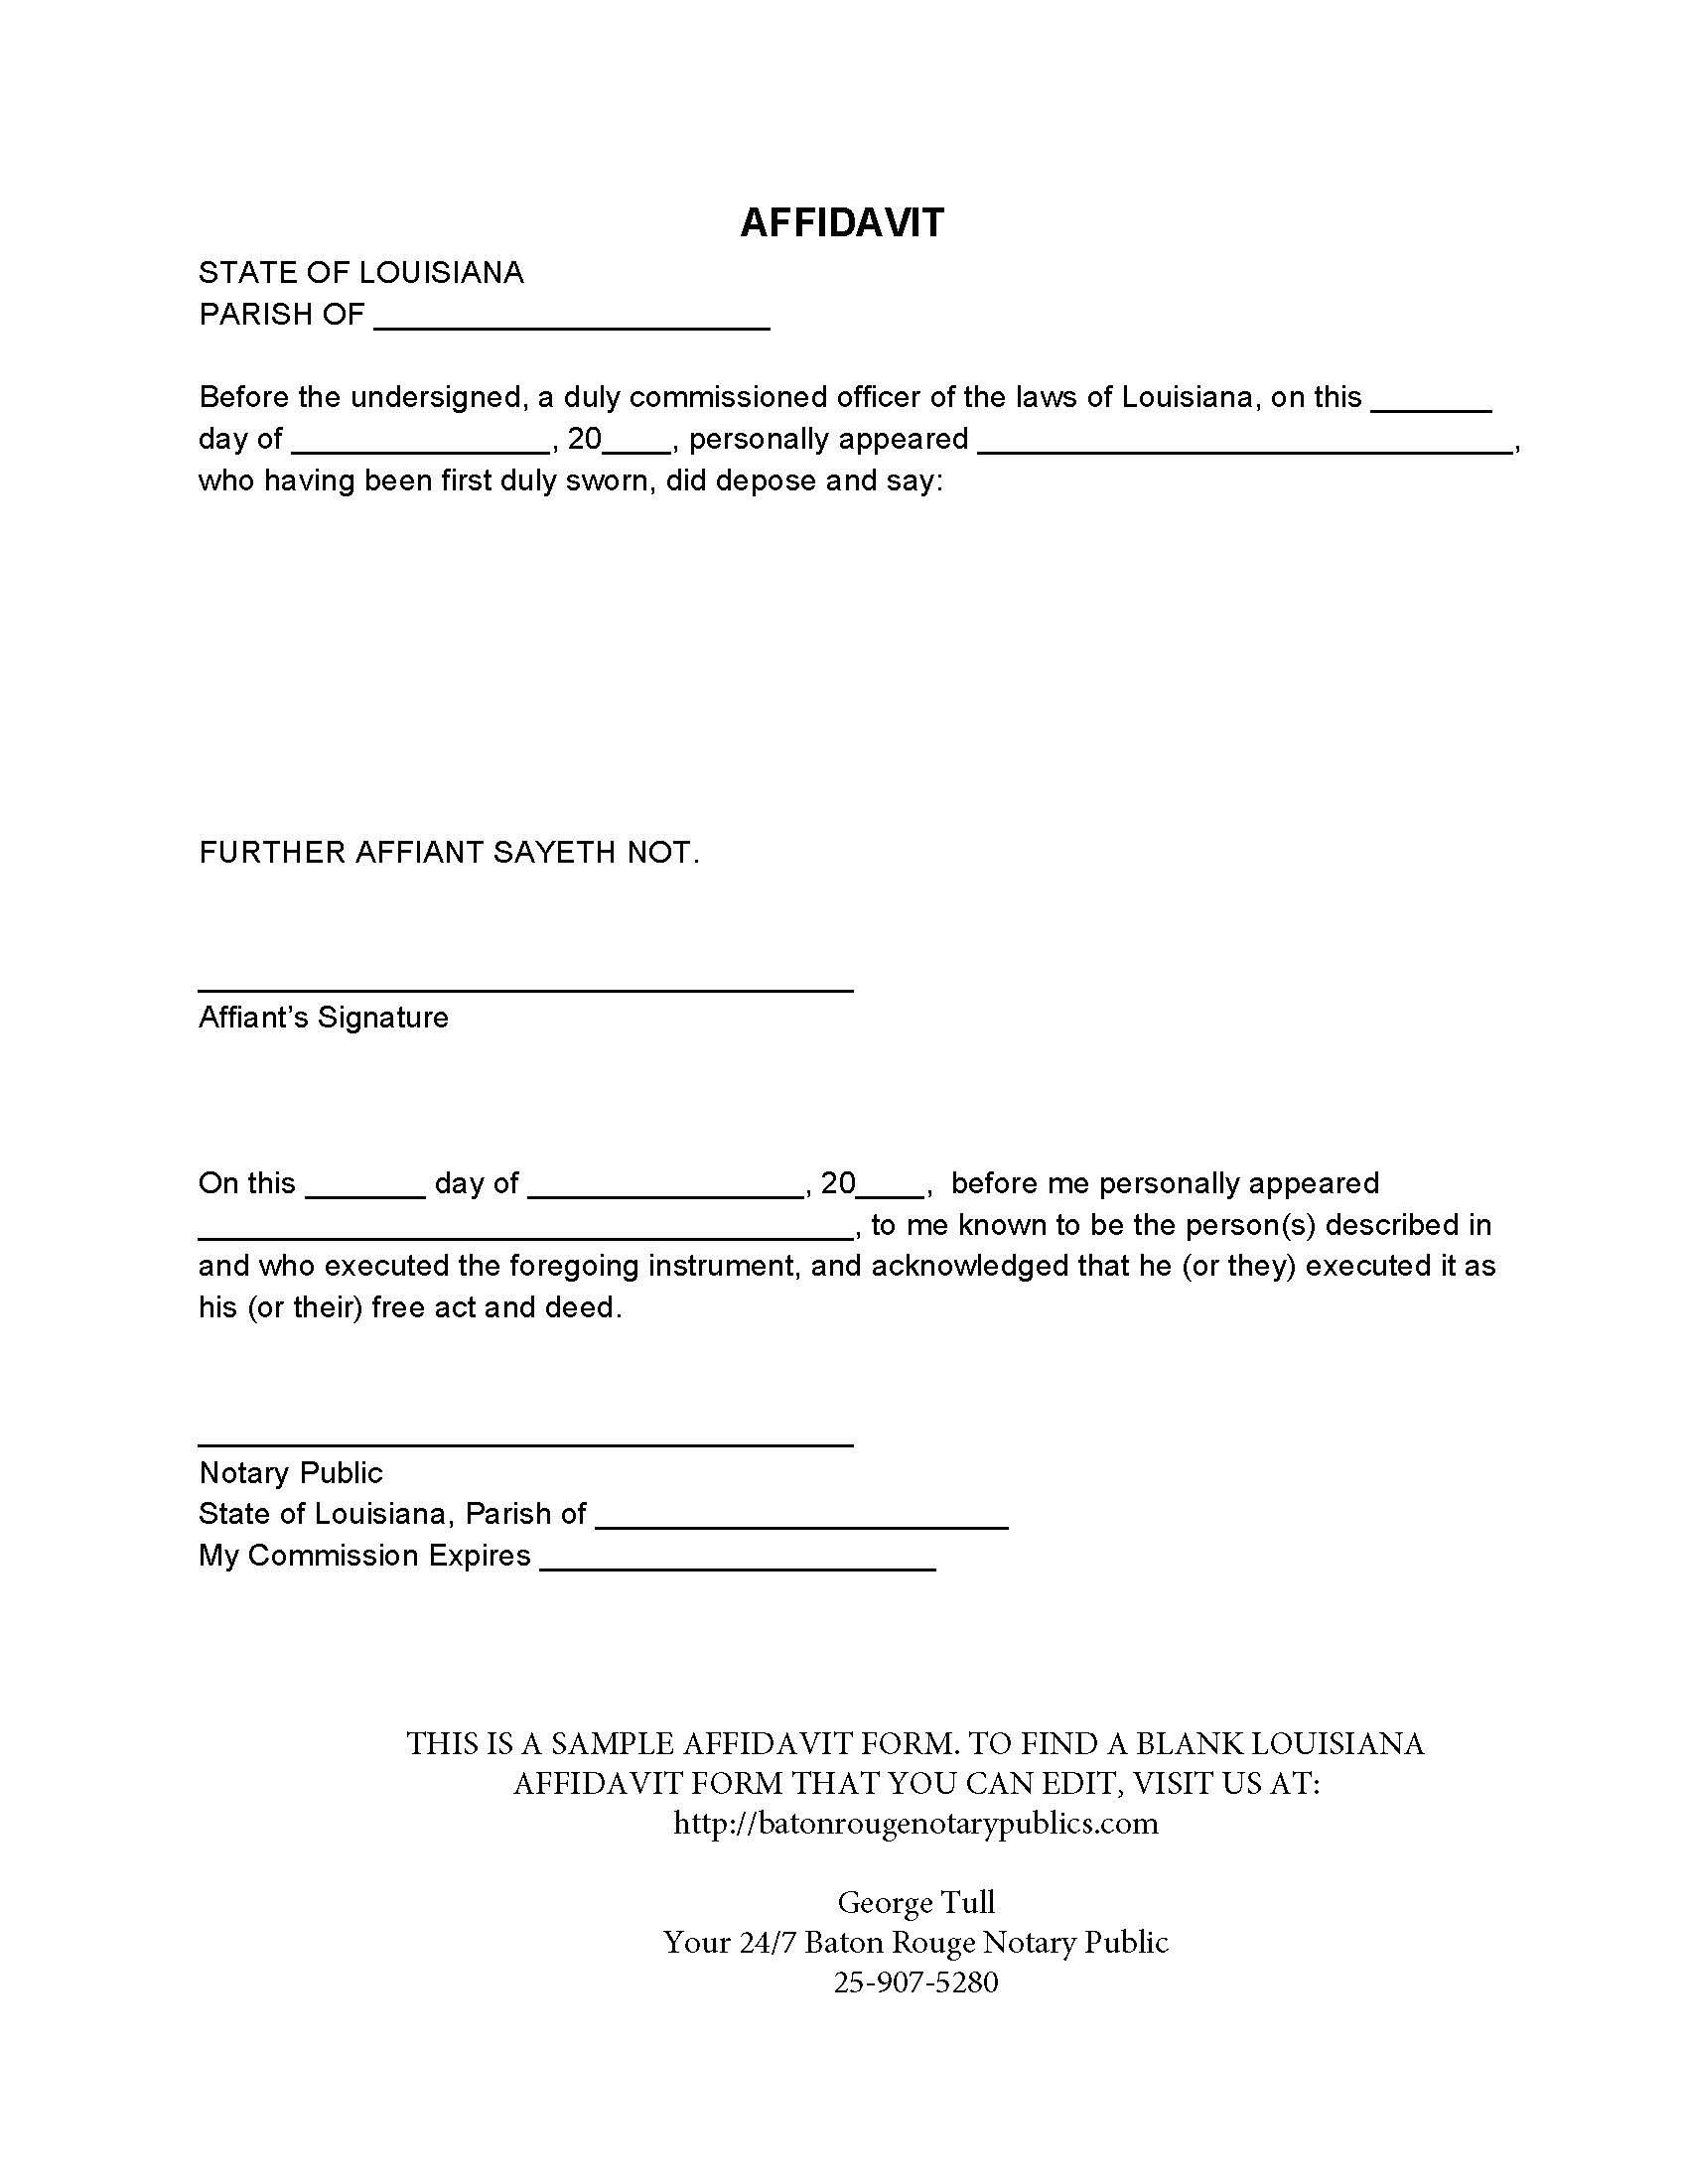 Attractive Blank Louisiana Affidavit | Baton Rouge Notary Publics   Sample Affidavit Ideas Affidavit Samples